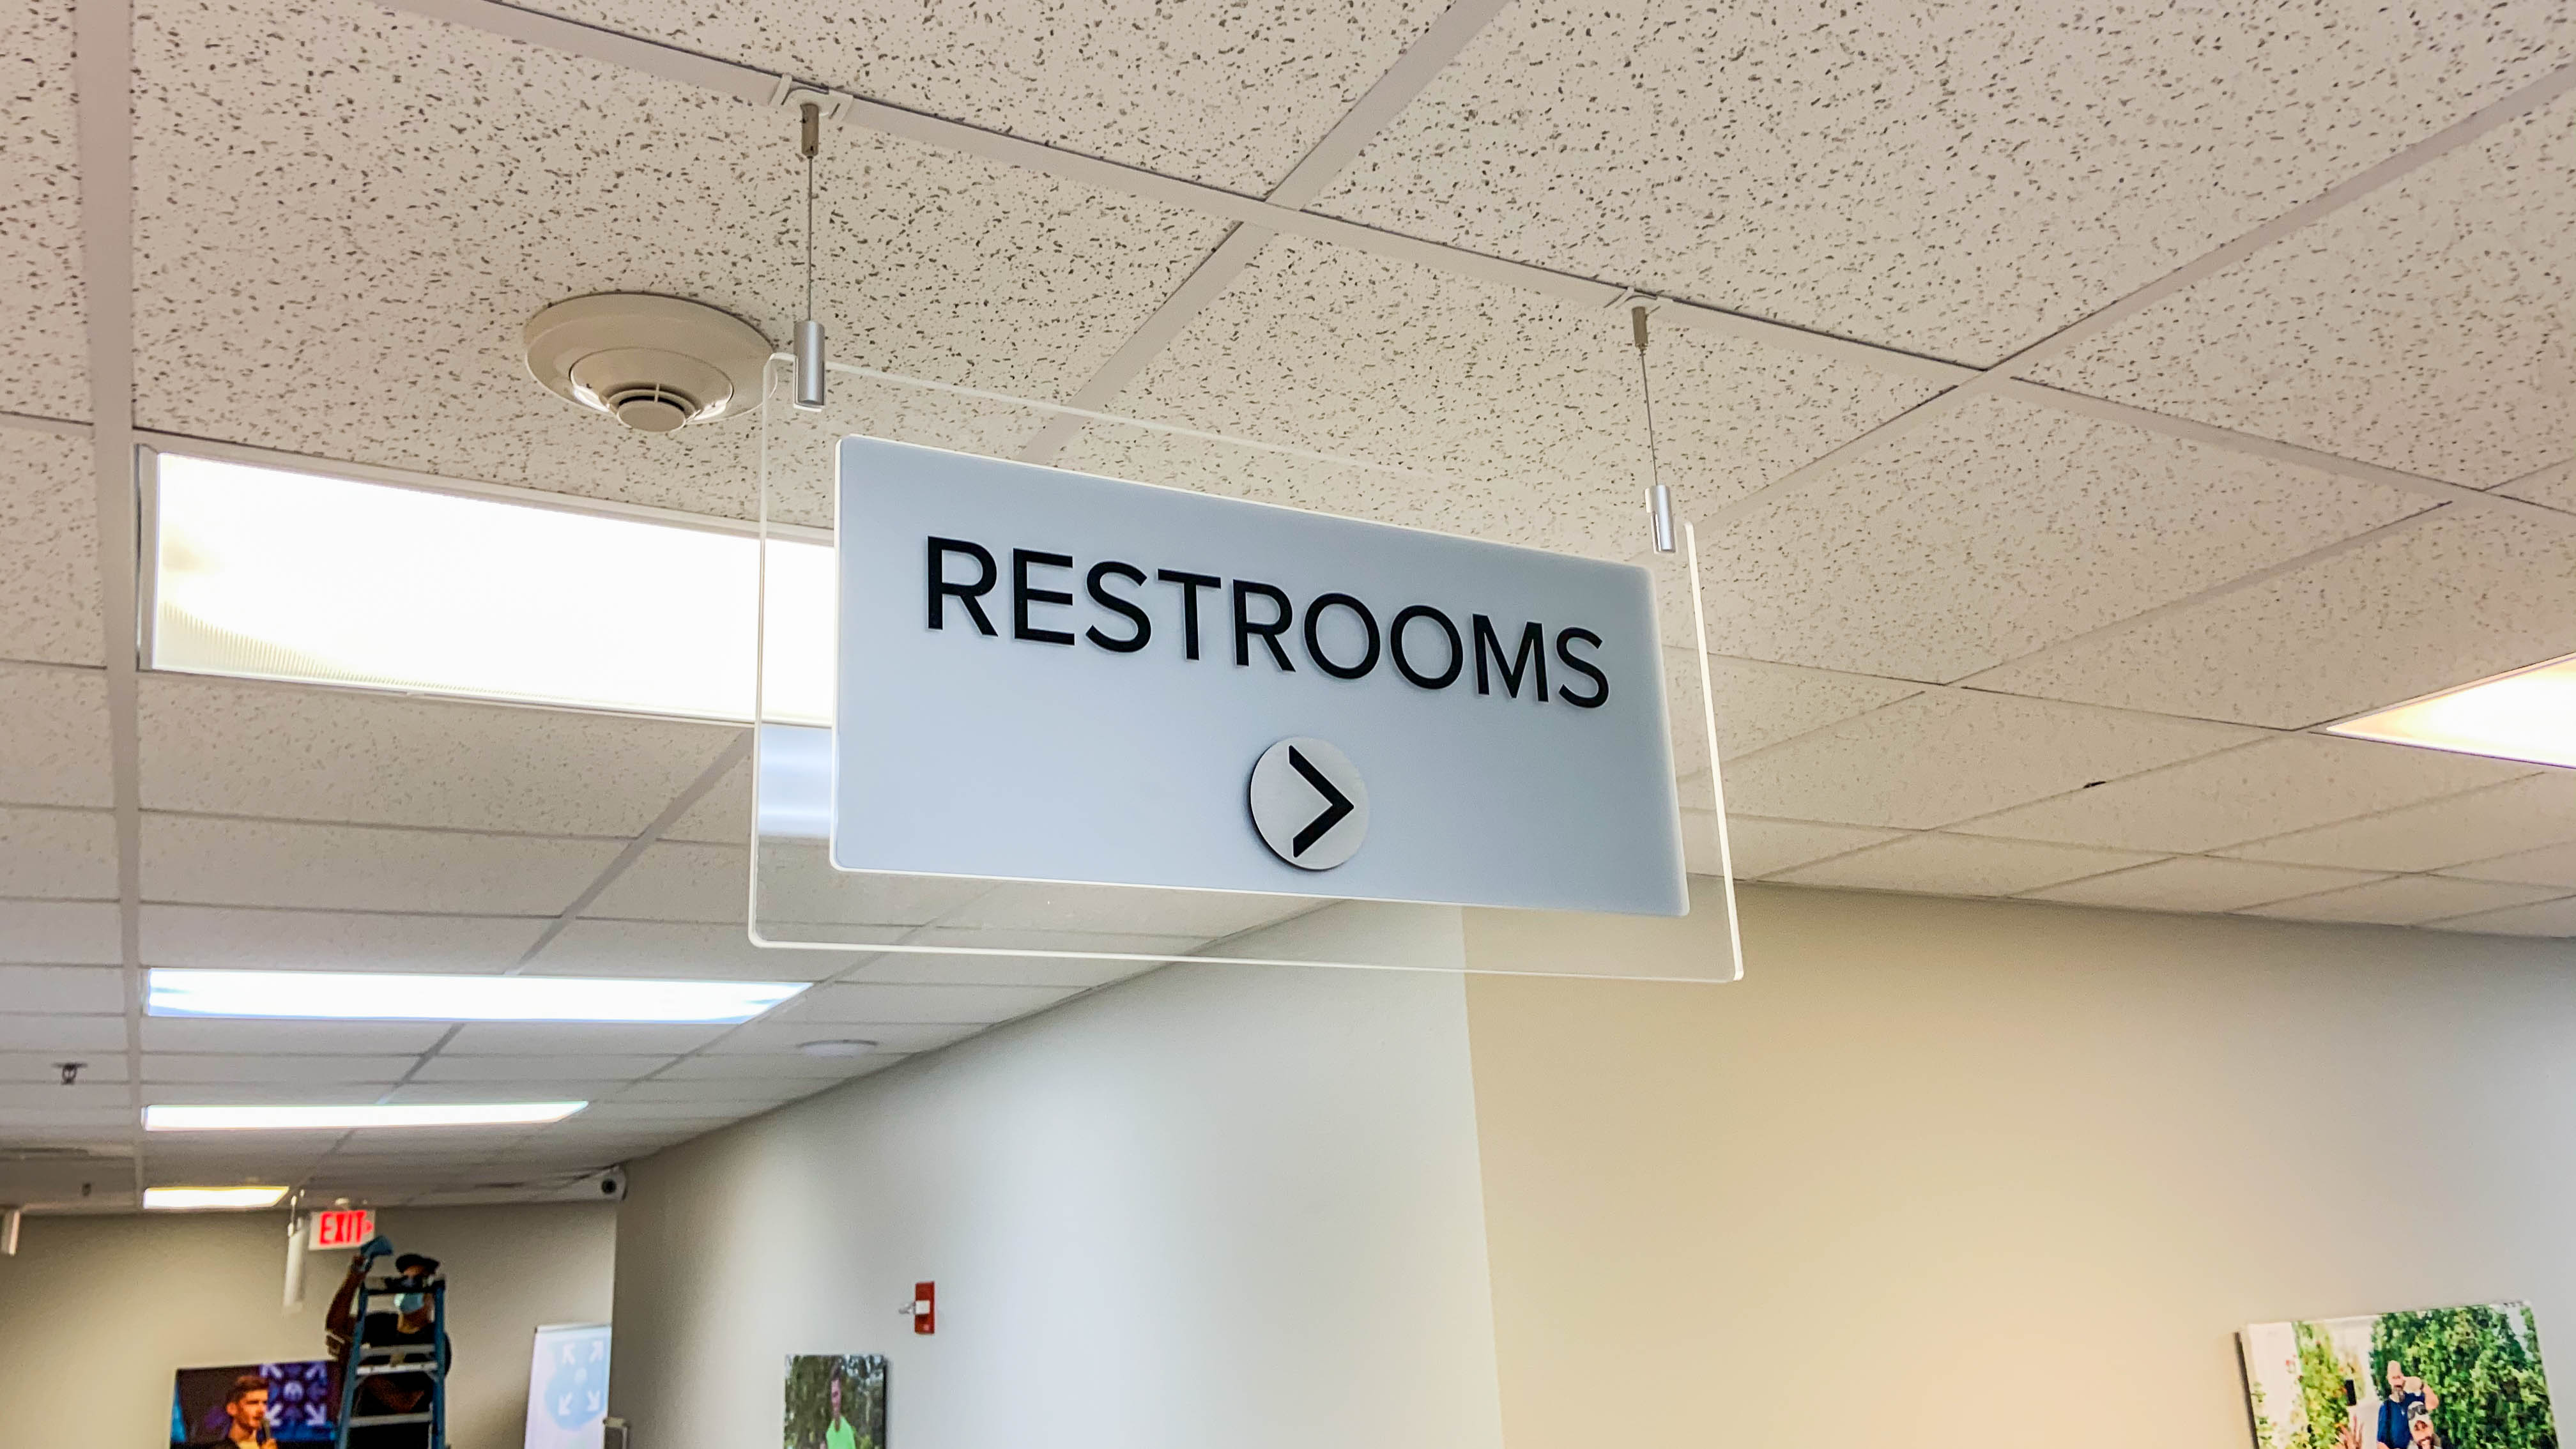 Acrylic restrooms signage